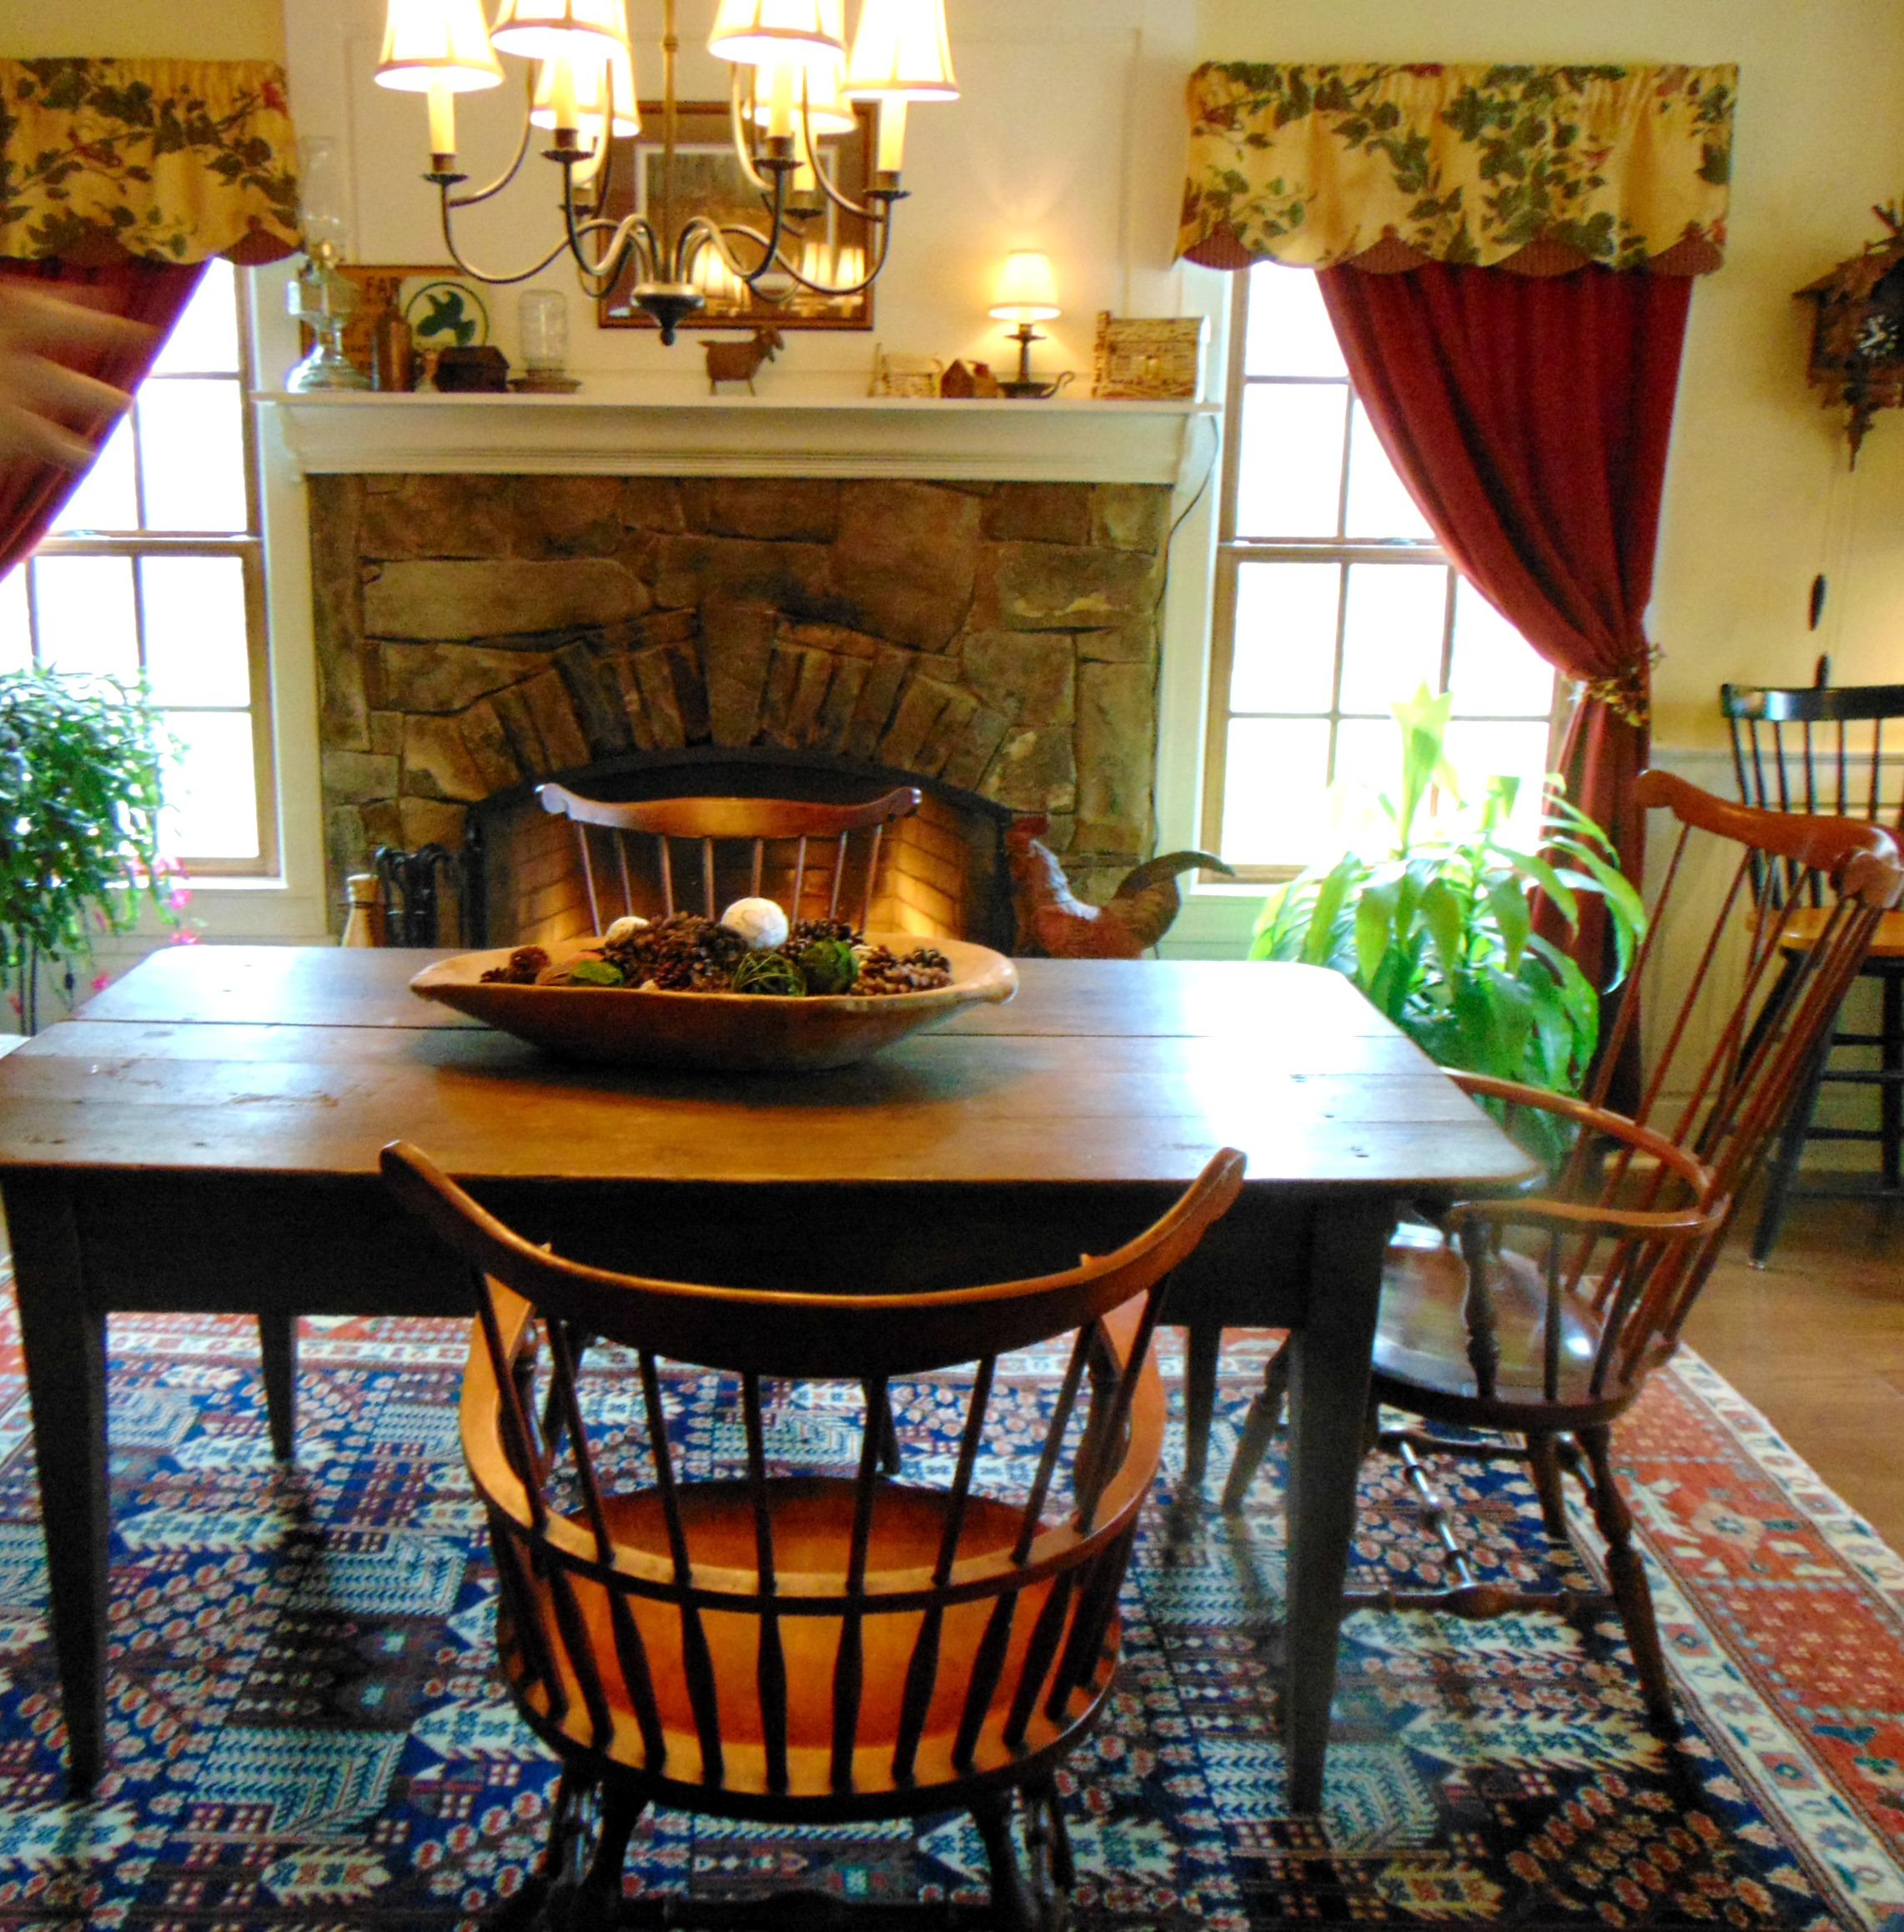 new-dinning-room-addition-with-fire-place-dave-cutlip-home-jan-17